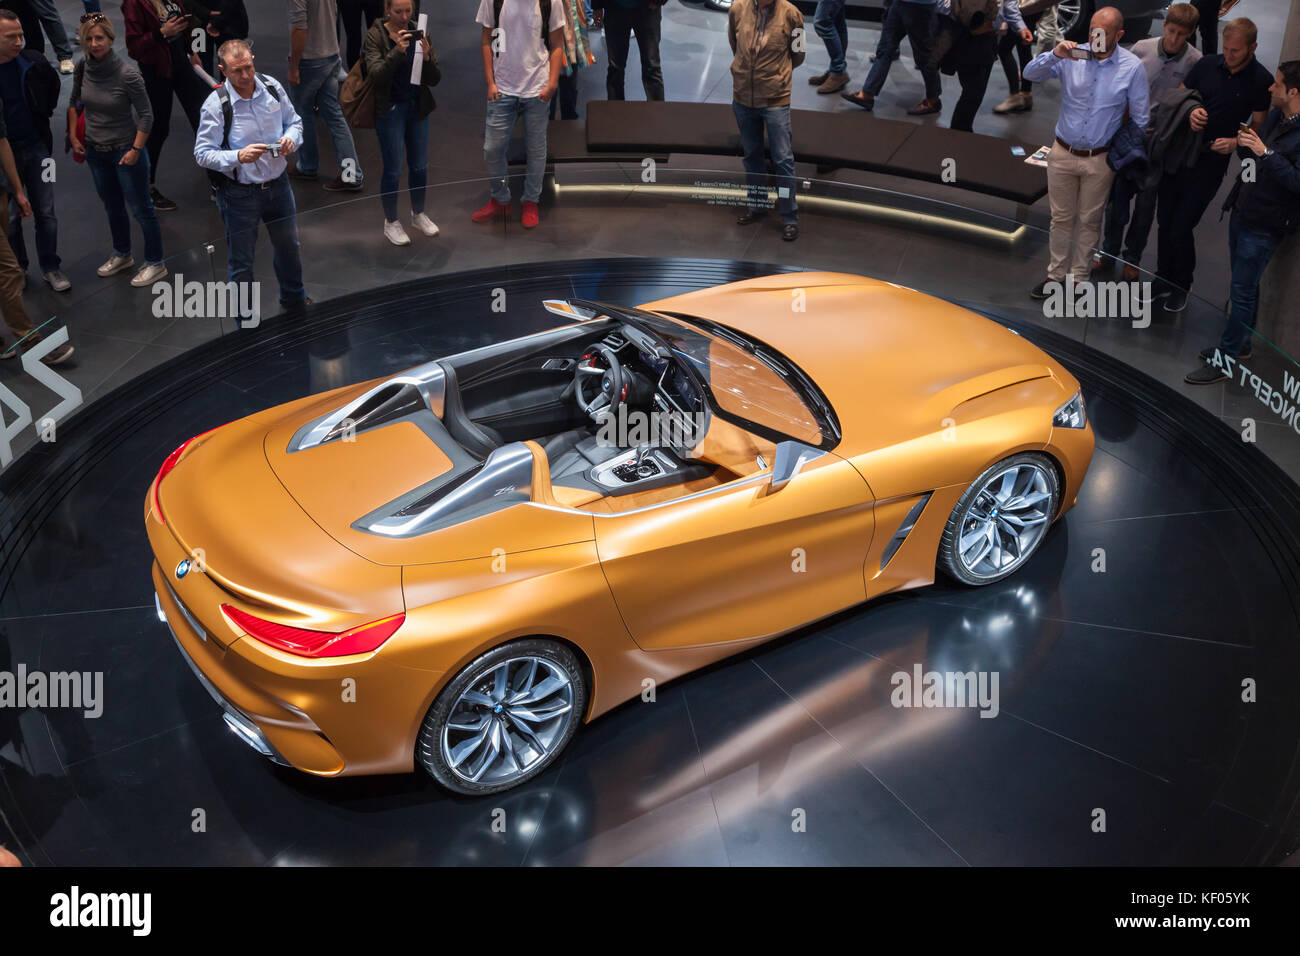 Bmw Z4 Stock Photos & Bmw Z4 Stock Images - Alamy